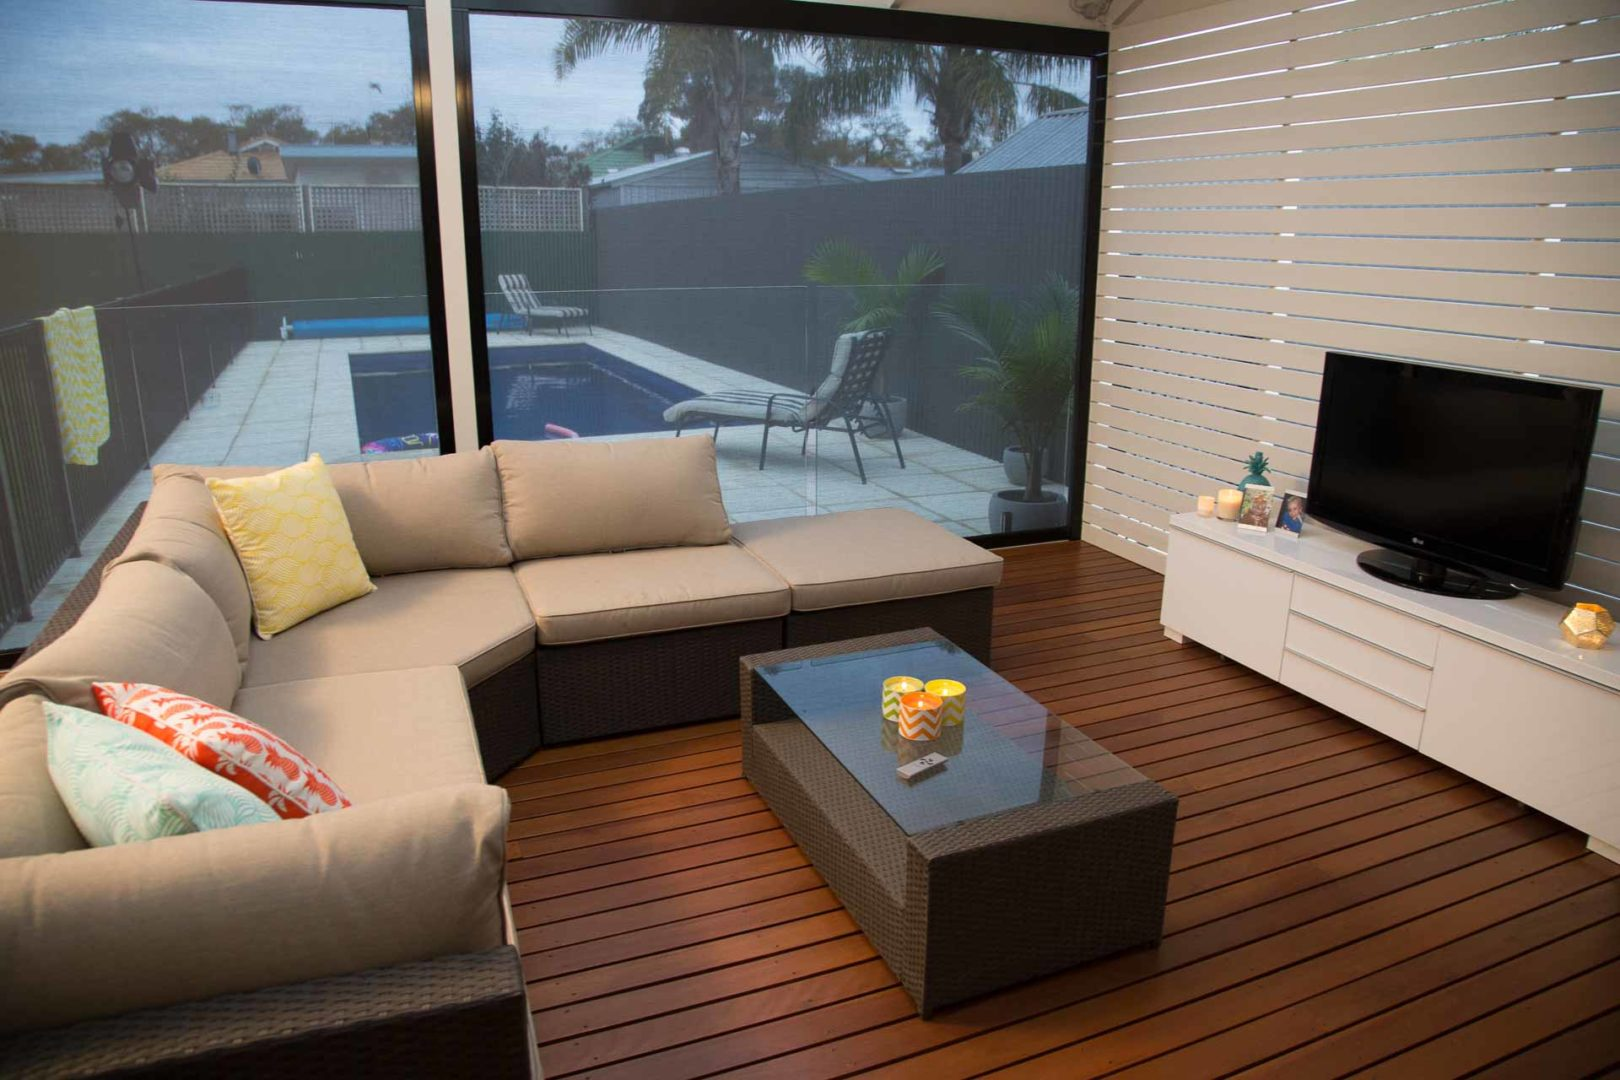 How to oil your timber deck - Oiling an older deck is a similar process as if your deck was new, Australian Outdoor Living.